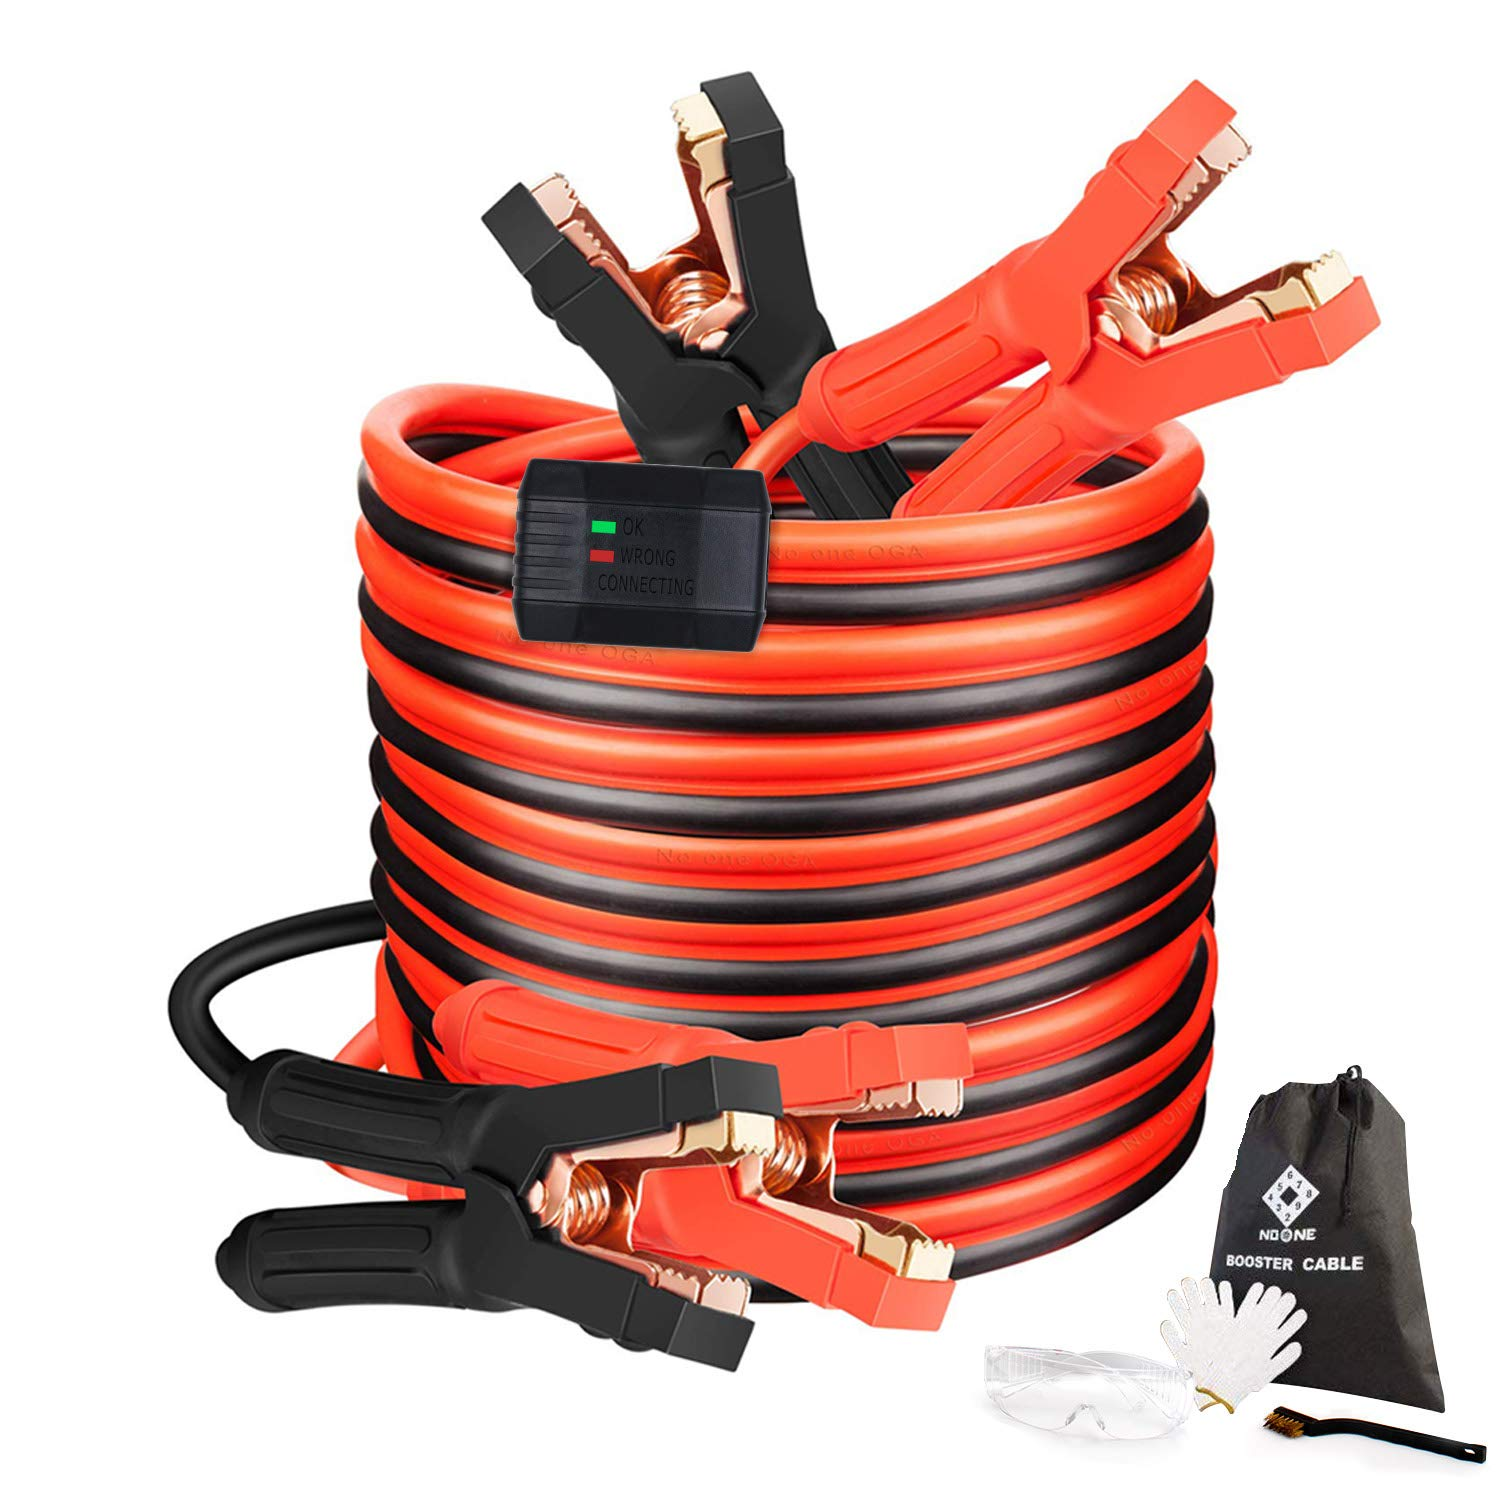 Jumper Cables Heavy Duty Booster Cables 0 Gauge 25Feet (0AWG x 25Ft) 1000Amp with Goggles Gloves Cleaning Brush in Carry Bag by NoOne